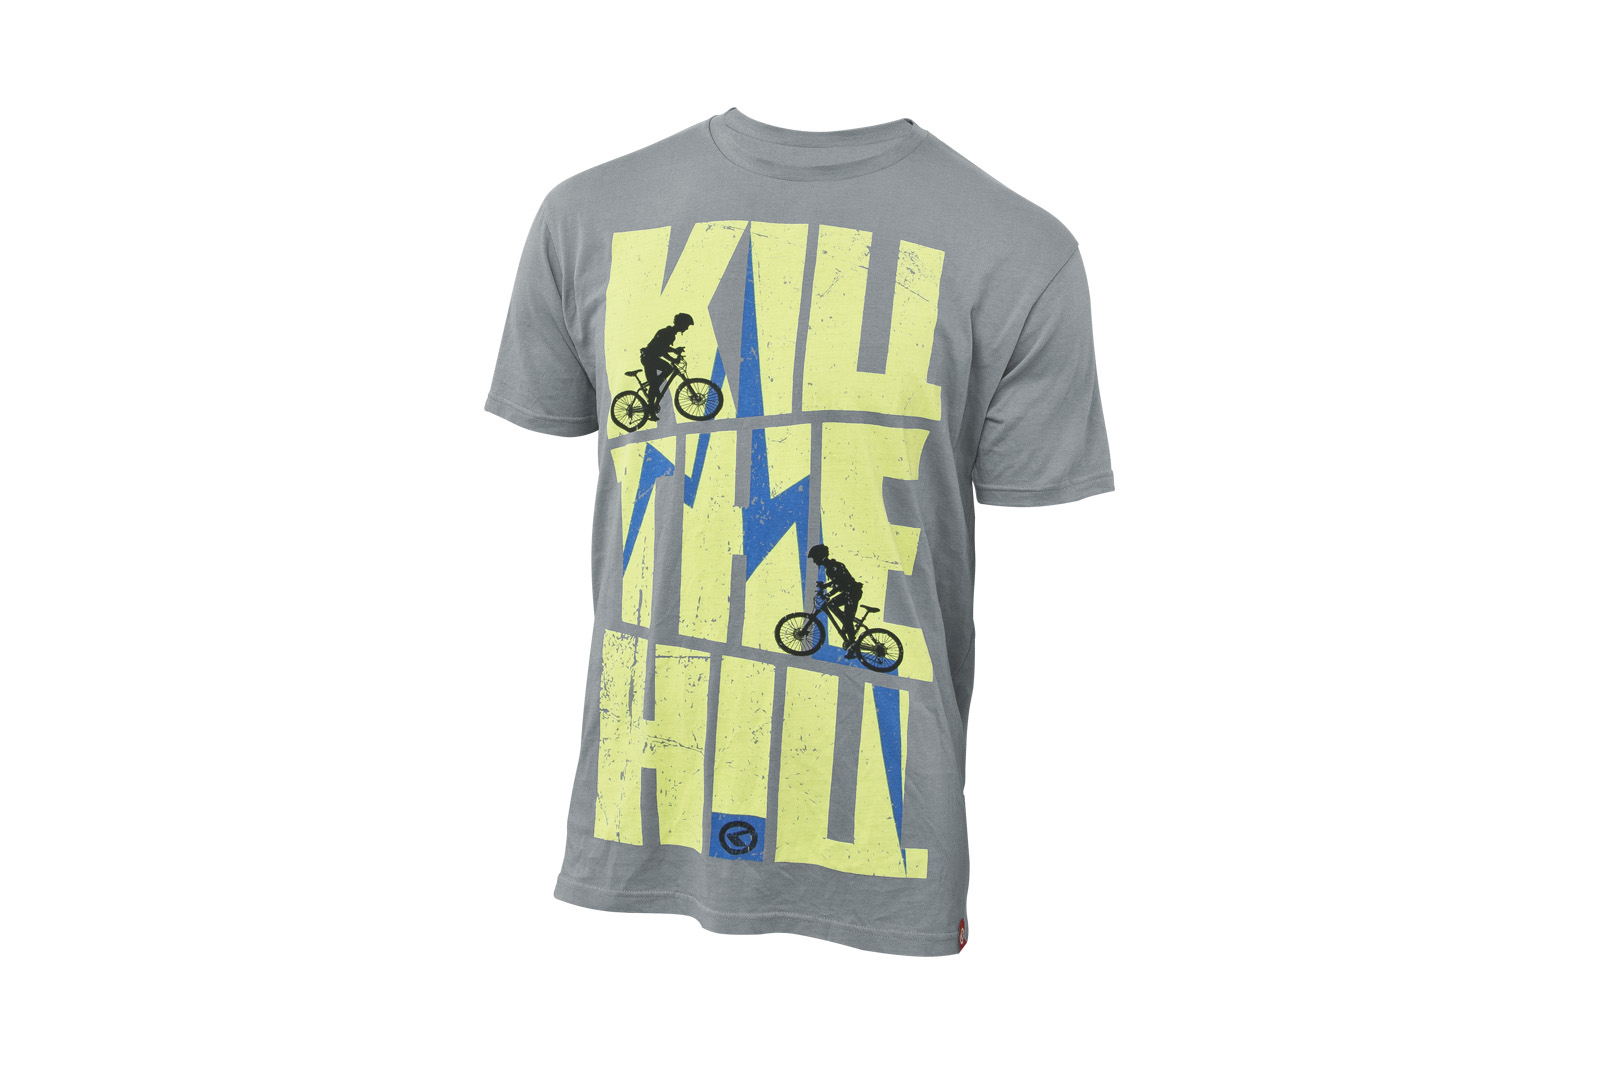 T-Shirt KELLYS KILL THE HILL kurzarm Grey - S - T-Shirt KELLYS KILL THE HILL kurzarm Grey - S